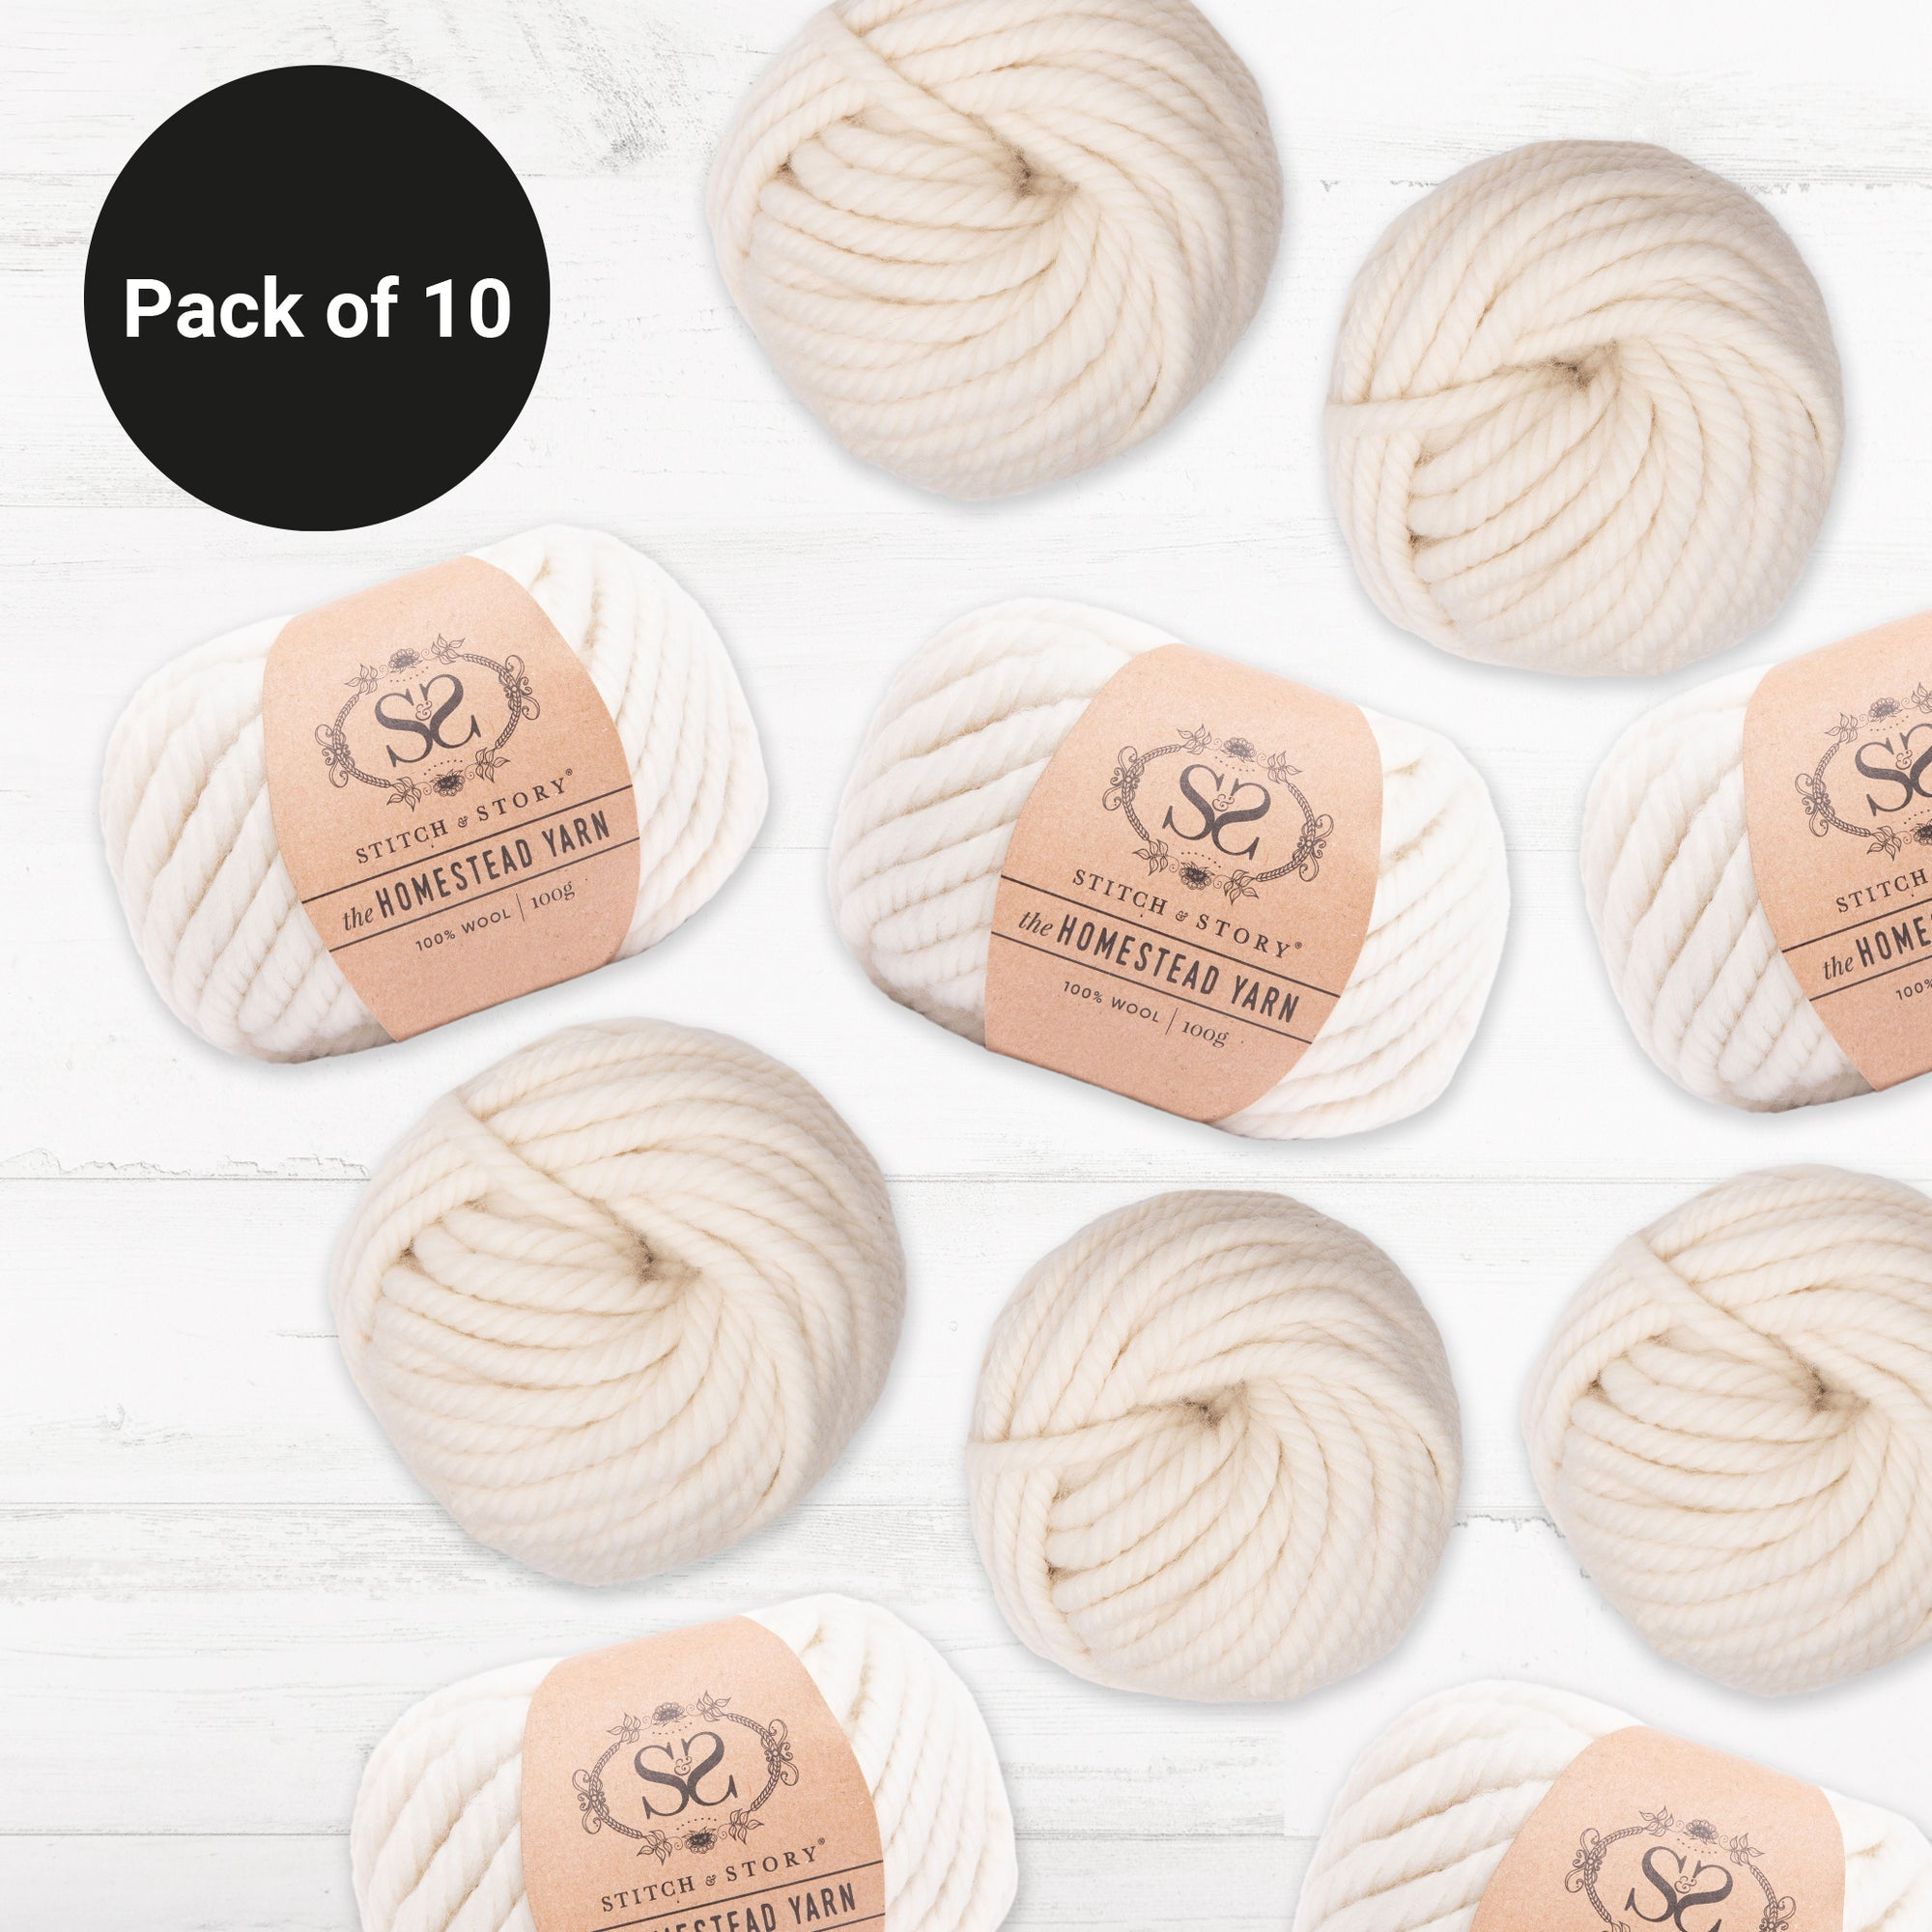 PRE-ORDER Pack of 10 - The Homestead Yarn